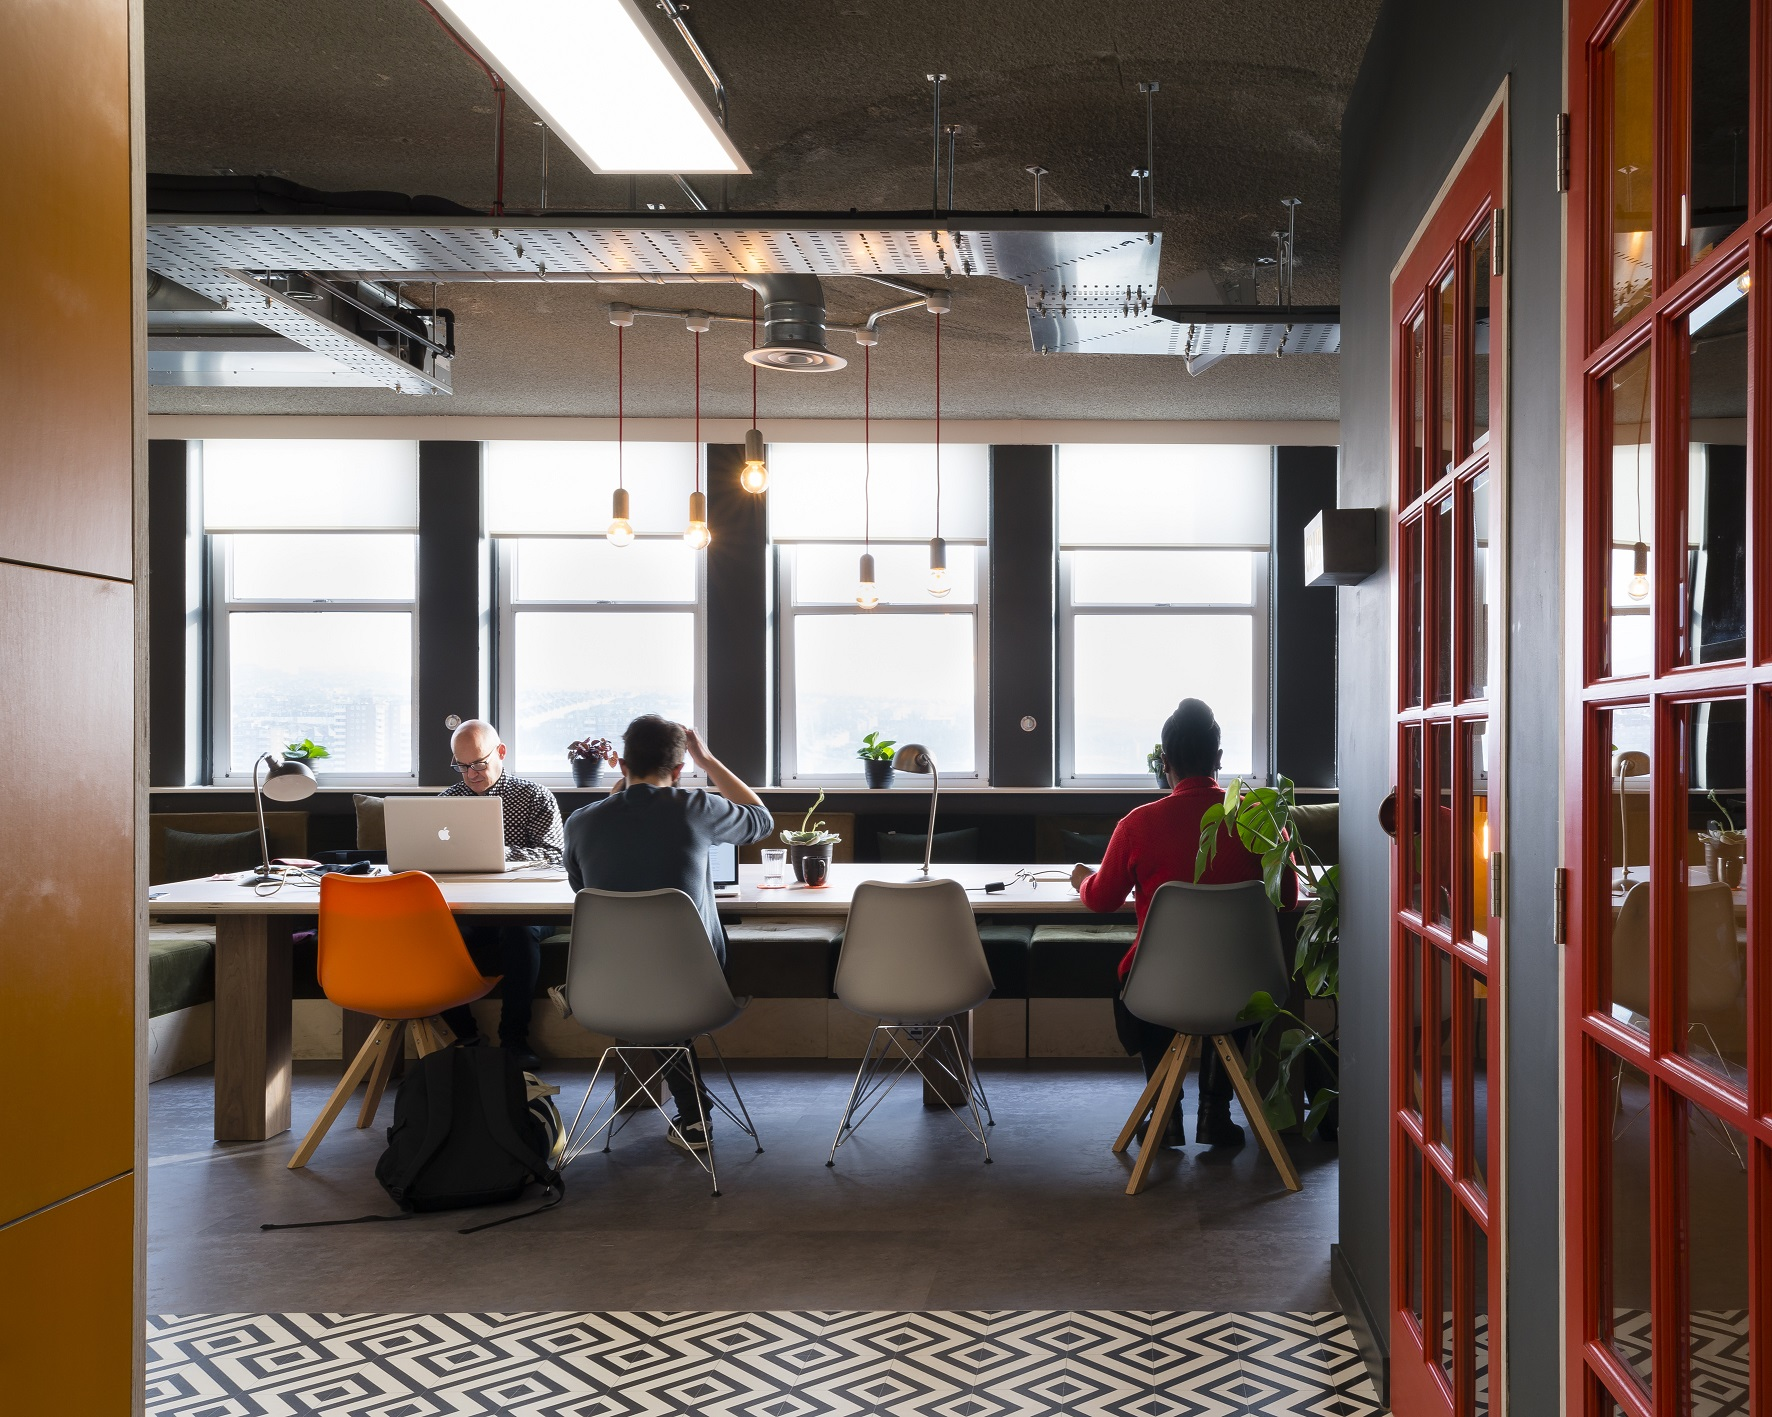 PLATF9RM - Tower Point - 44 North Road, BN1 - Brighton (co-working, private)